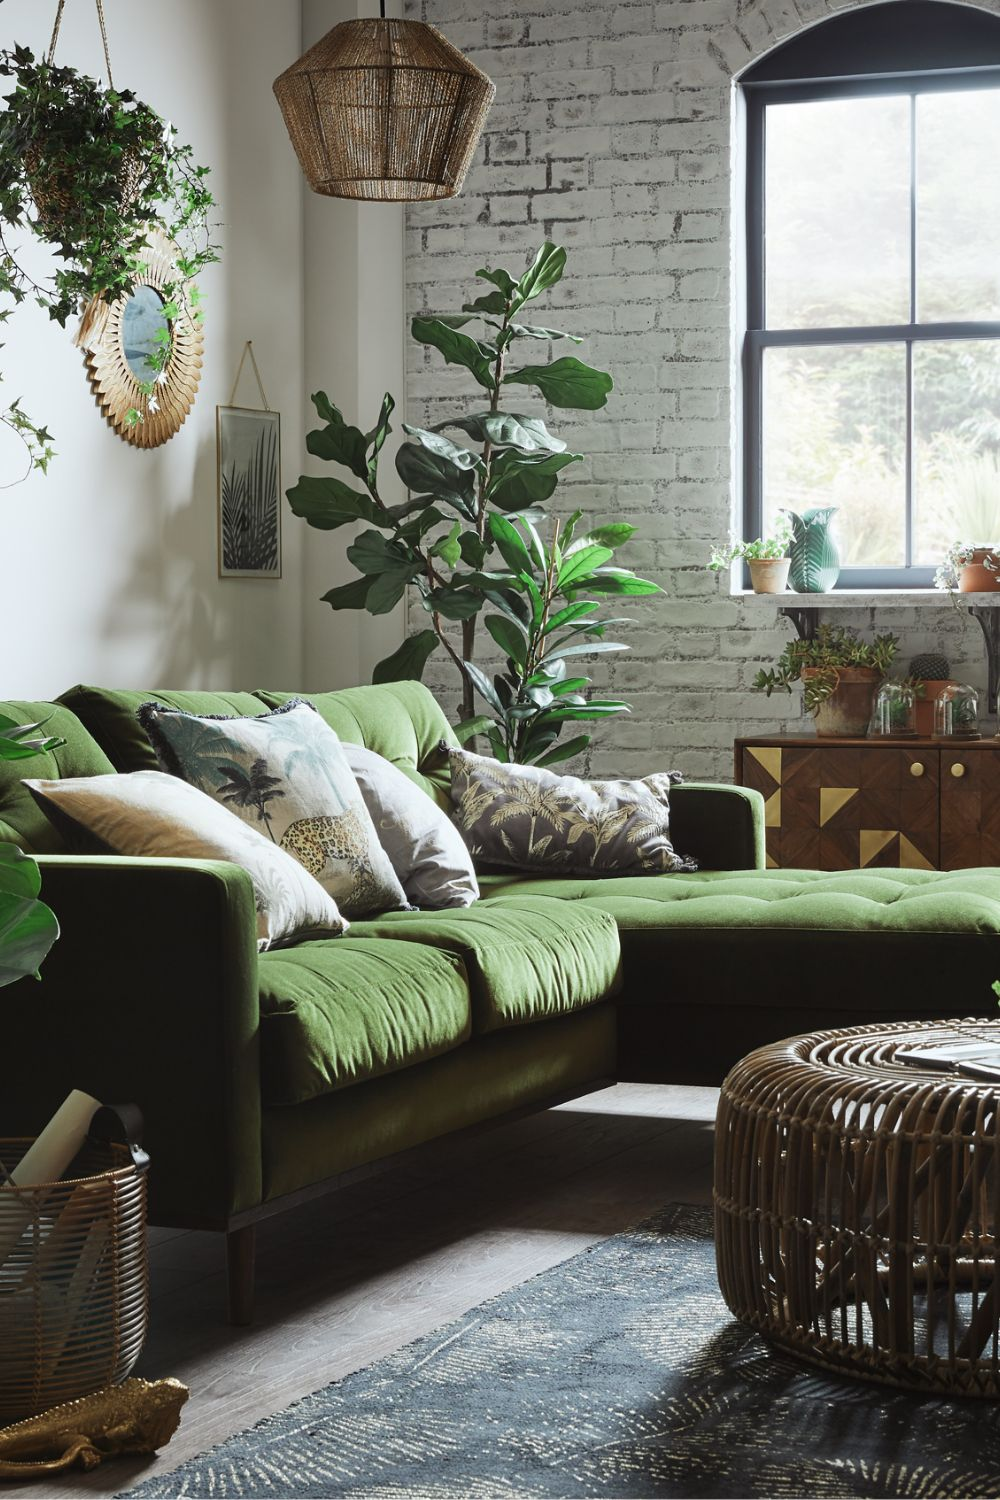 Kitchen Furniture Homewear Nationwide Delivery Littlewoods Ireland In 2020 Green Sofa Living Room Green Sofa Living Living Room Green